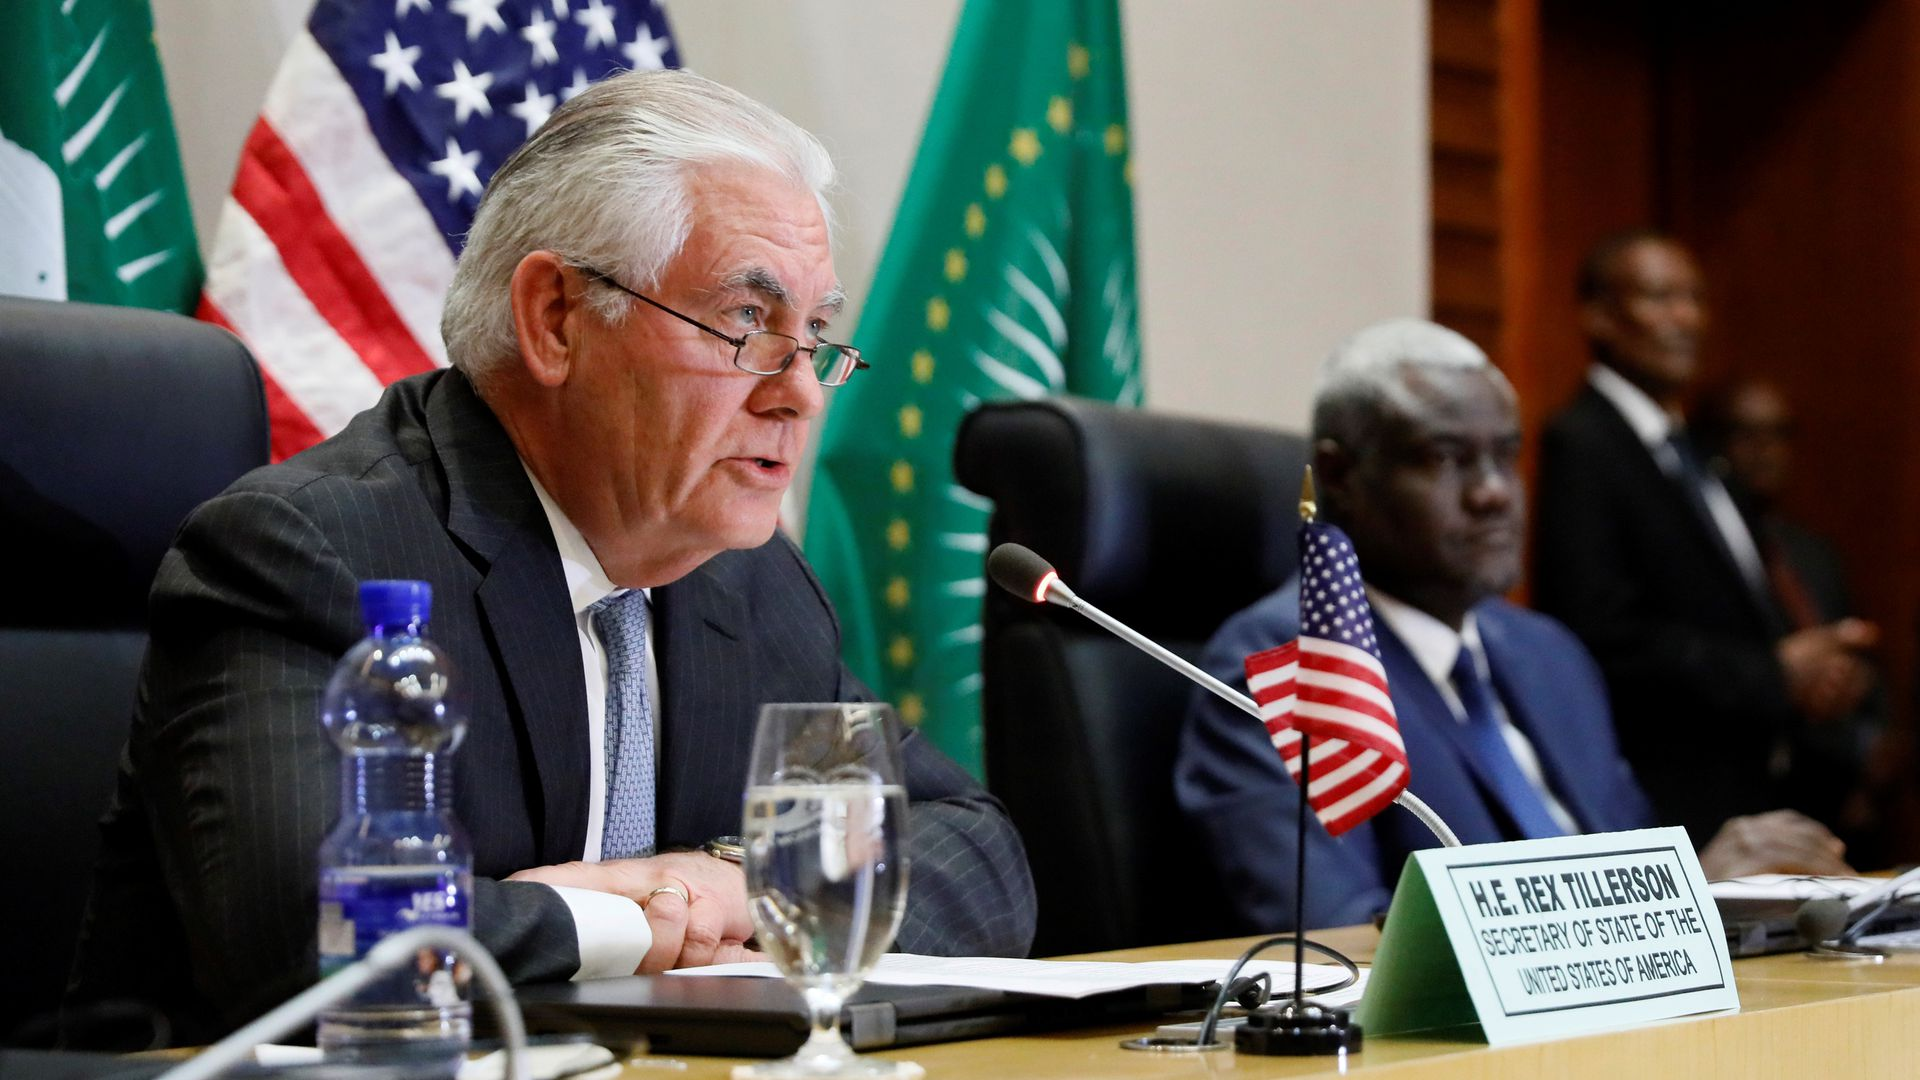 U.S. Secretary of State Rex Tillerson at a news conference with African Union Commission Chairman Moussa Faki of Chad on March 8, 2018, at the AU headquarters in Addis Ababa.